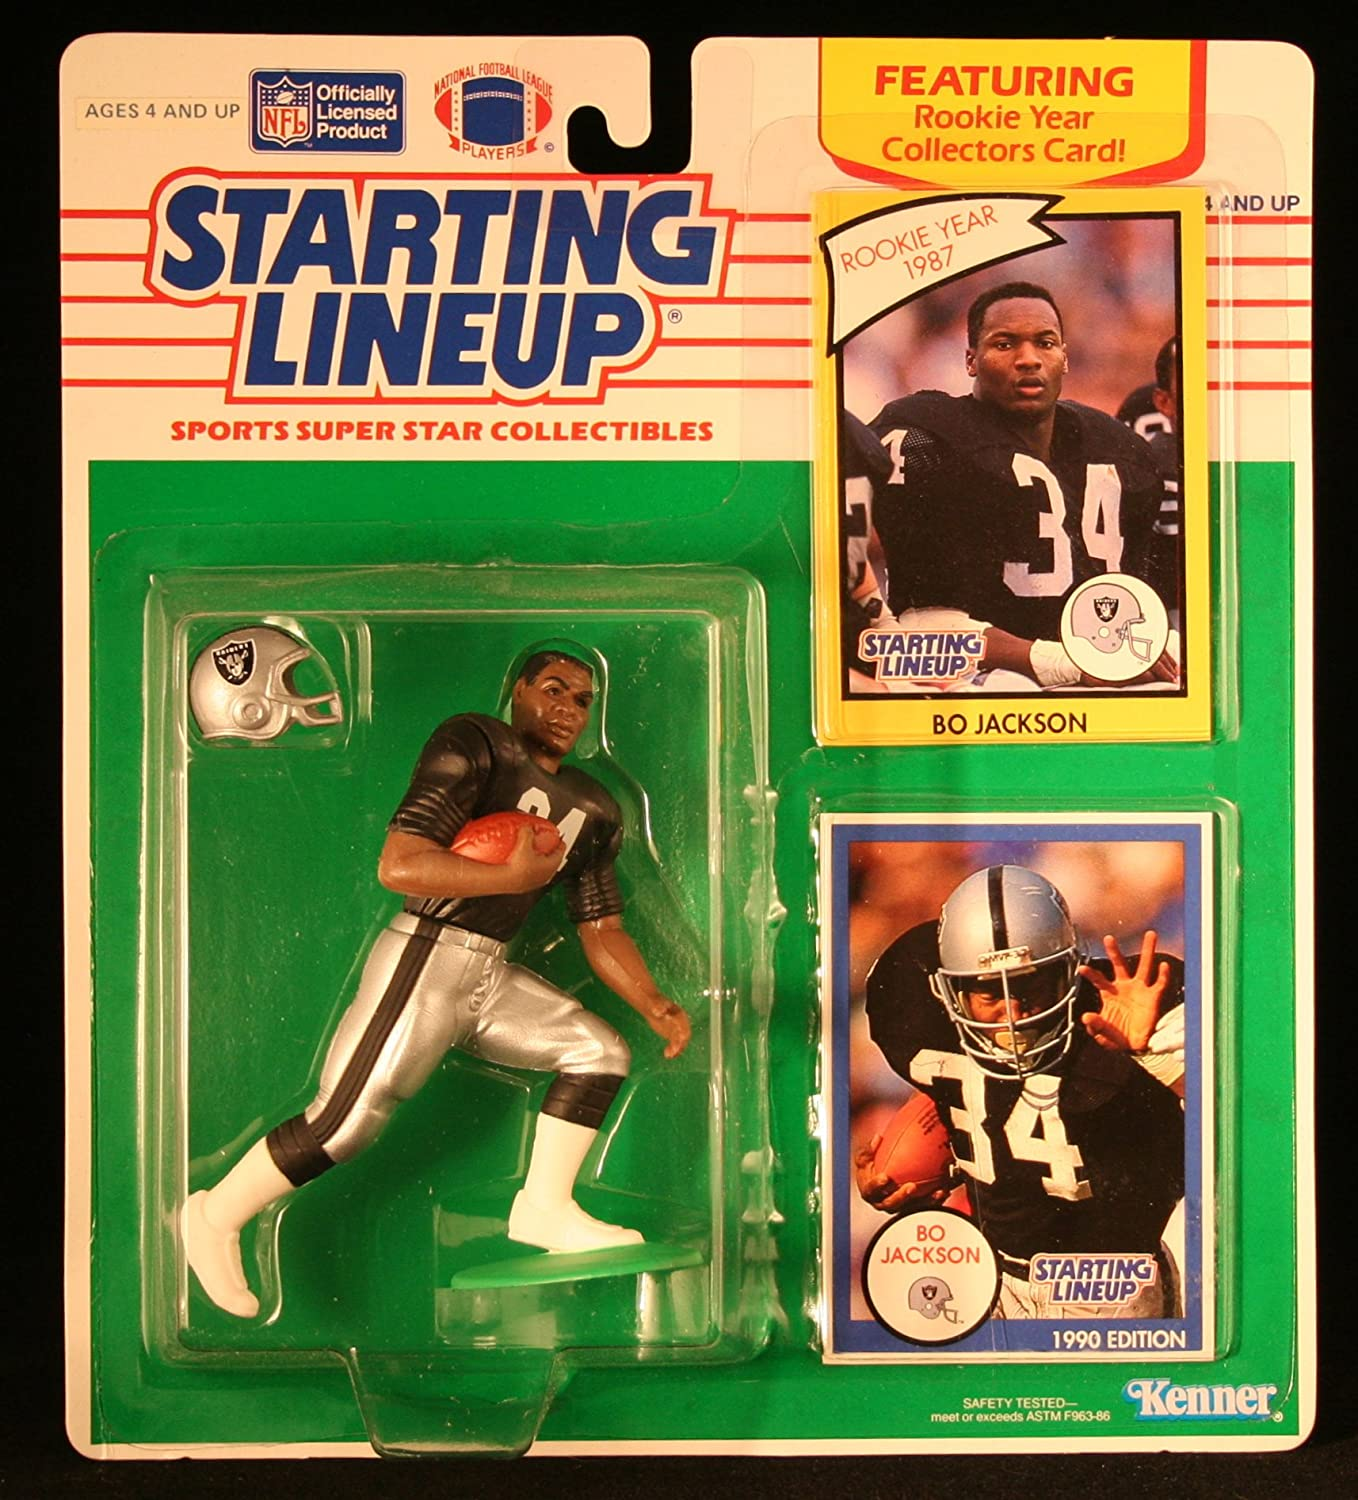 BO JACKSON OAKLAND RAIDERS 1990 NFL Starting Lineup Action Figure /& Exclusive NFL Collector Trading Card Kenner 73247